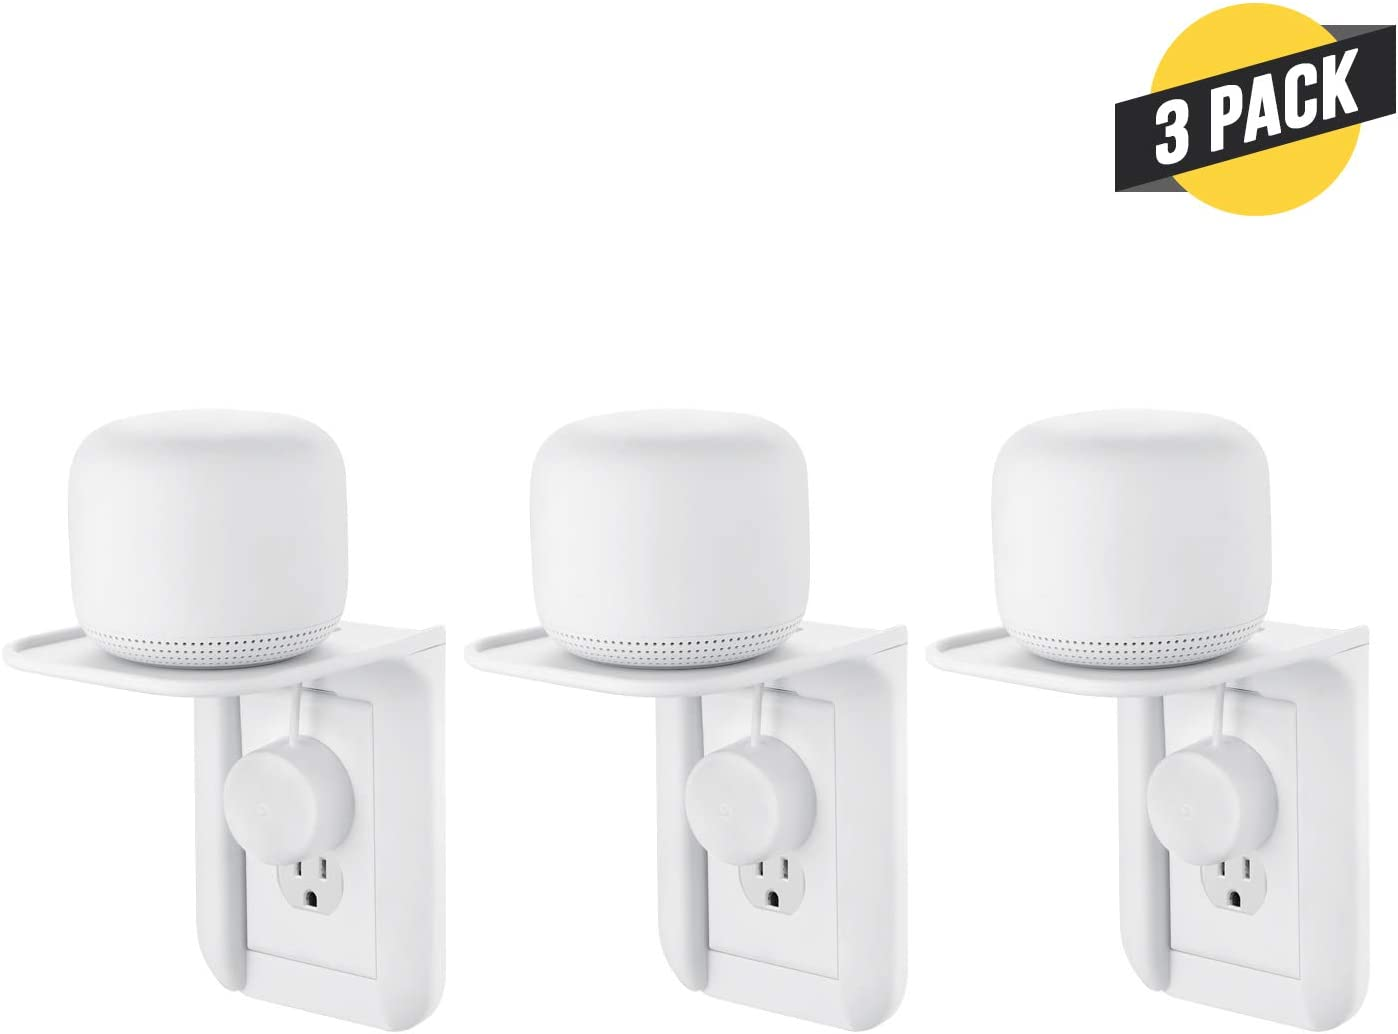 Wasserstein AC Outlet Mount for Google Nest WiFi - Perfect Wall Outlet Shelf for Google Home, Nest Mini & Nest Hub, Dot 1st, 2nd & 3rd Speaker, Sonos One, Smartphones and Other Electronics (3-Pack)